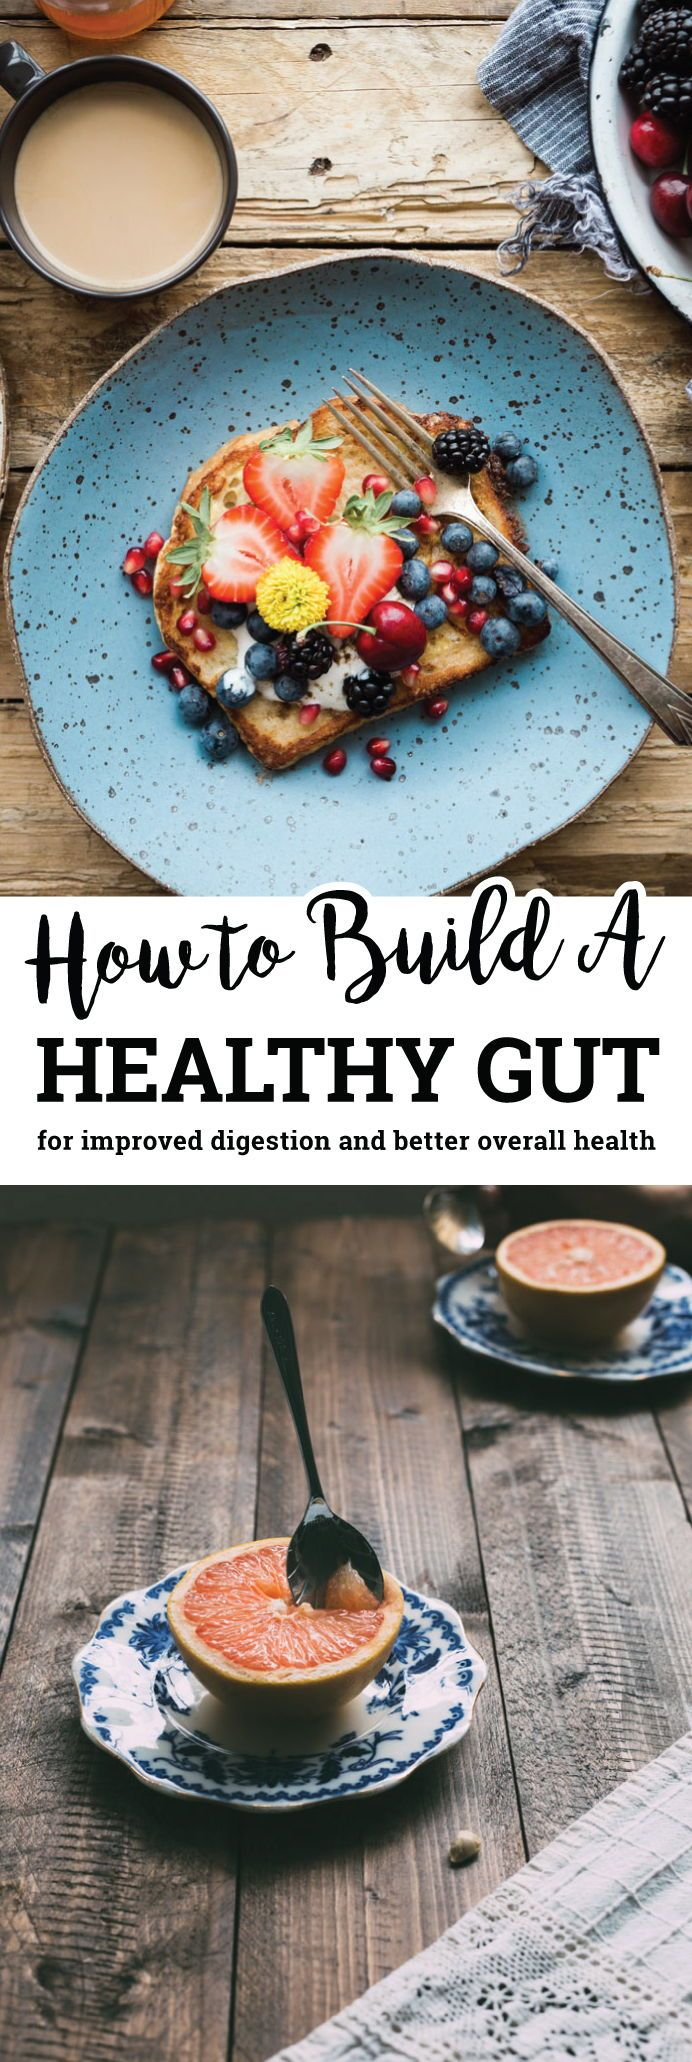 Learn how to build a healthy gut for improved digestion and overall health. Discusses leaky gut, how to repair the gut, the best healthy gut foods and lifestyle habits to improve your gut health.